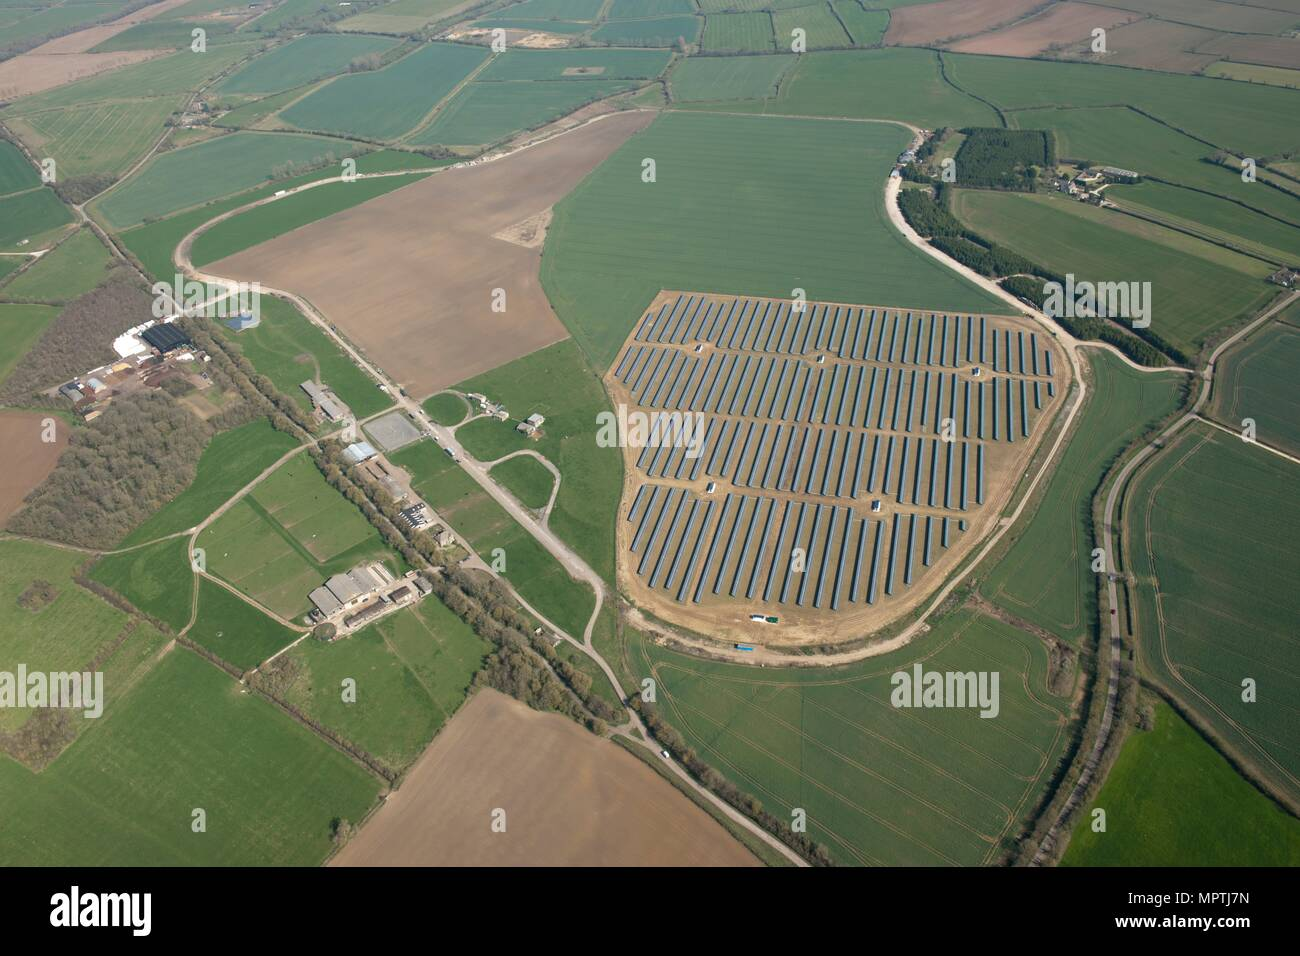 Solar farm on the site of the former RAF airfield, Long Newnton, Gloucestershire, c2010s(?). Artist: Damian Grady. - Stock Image